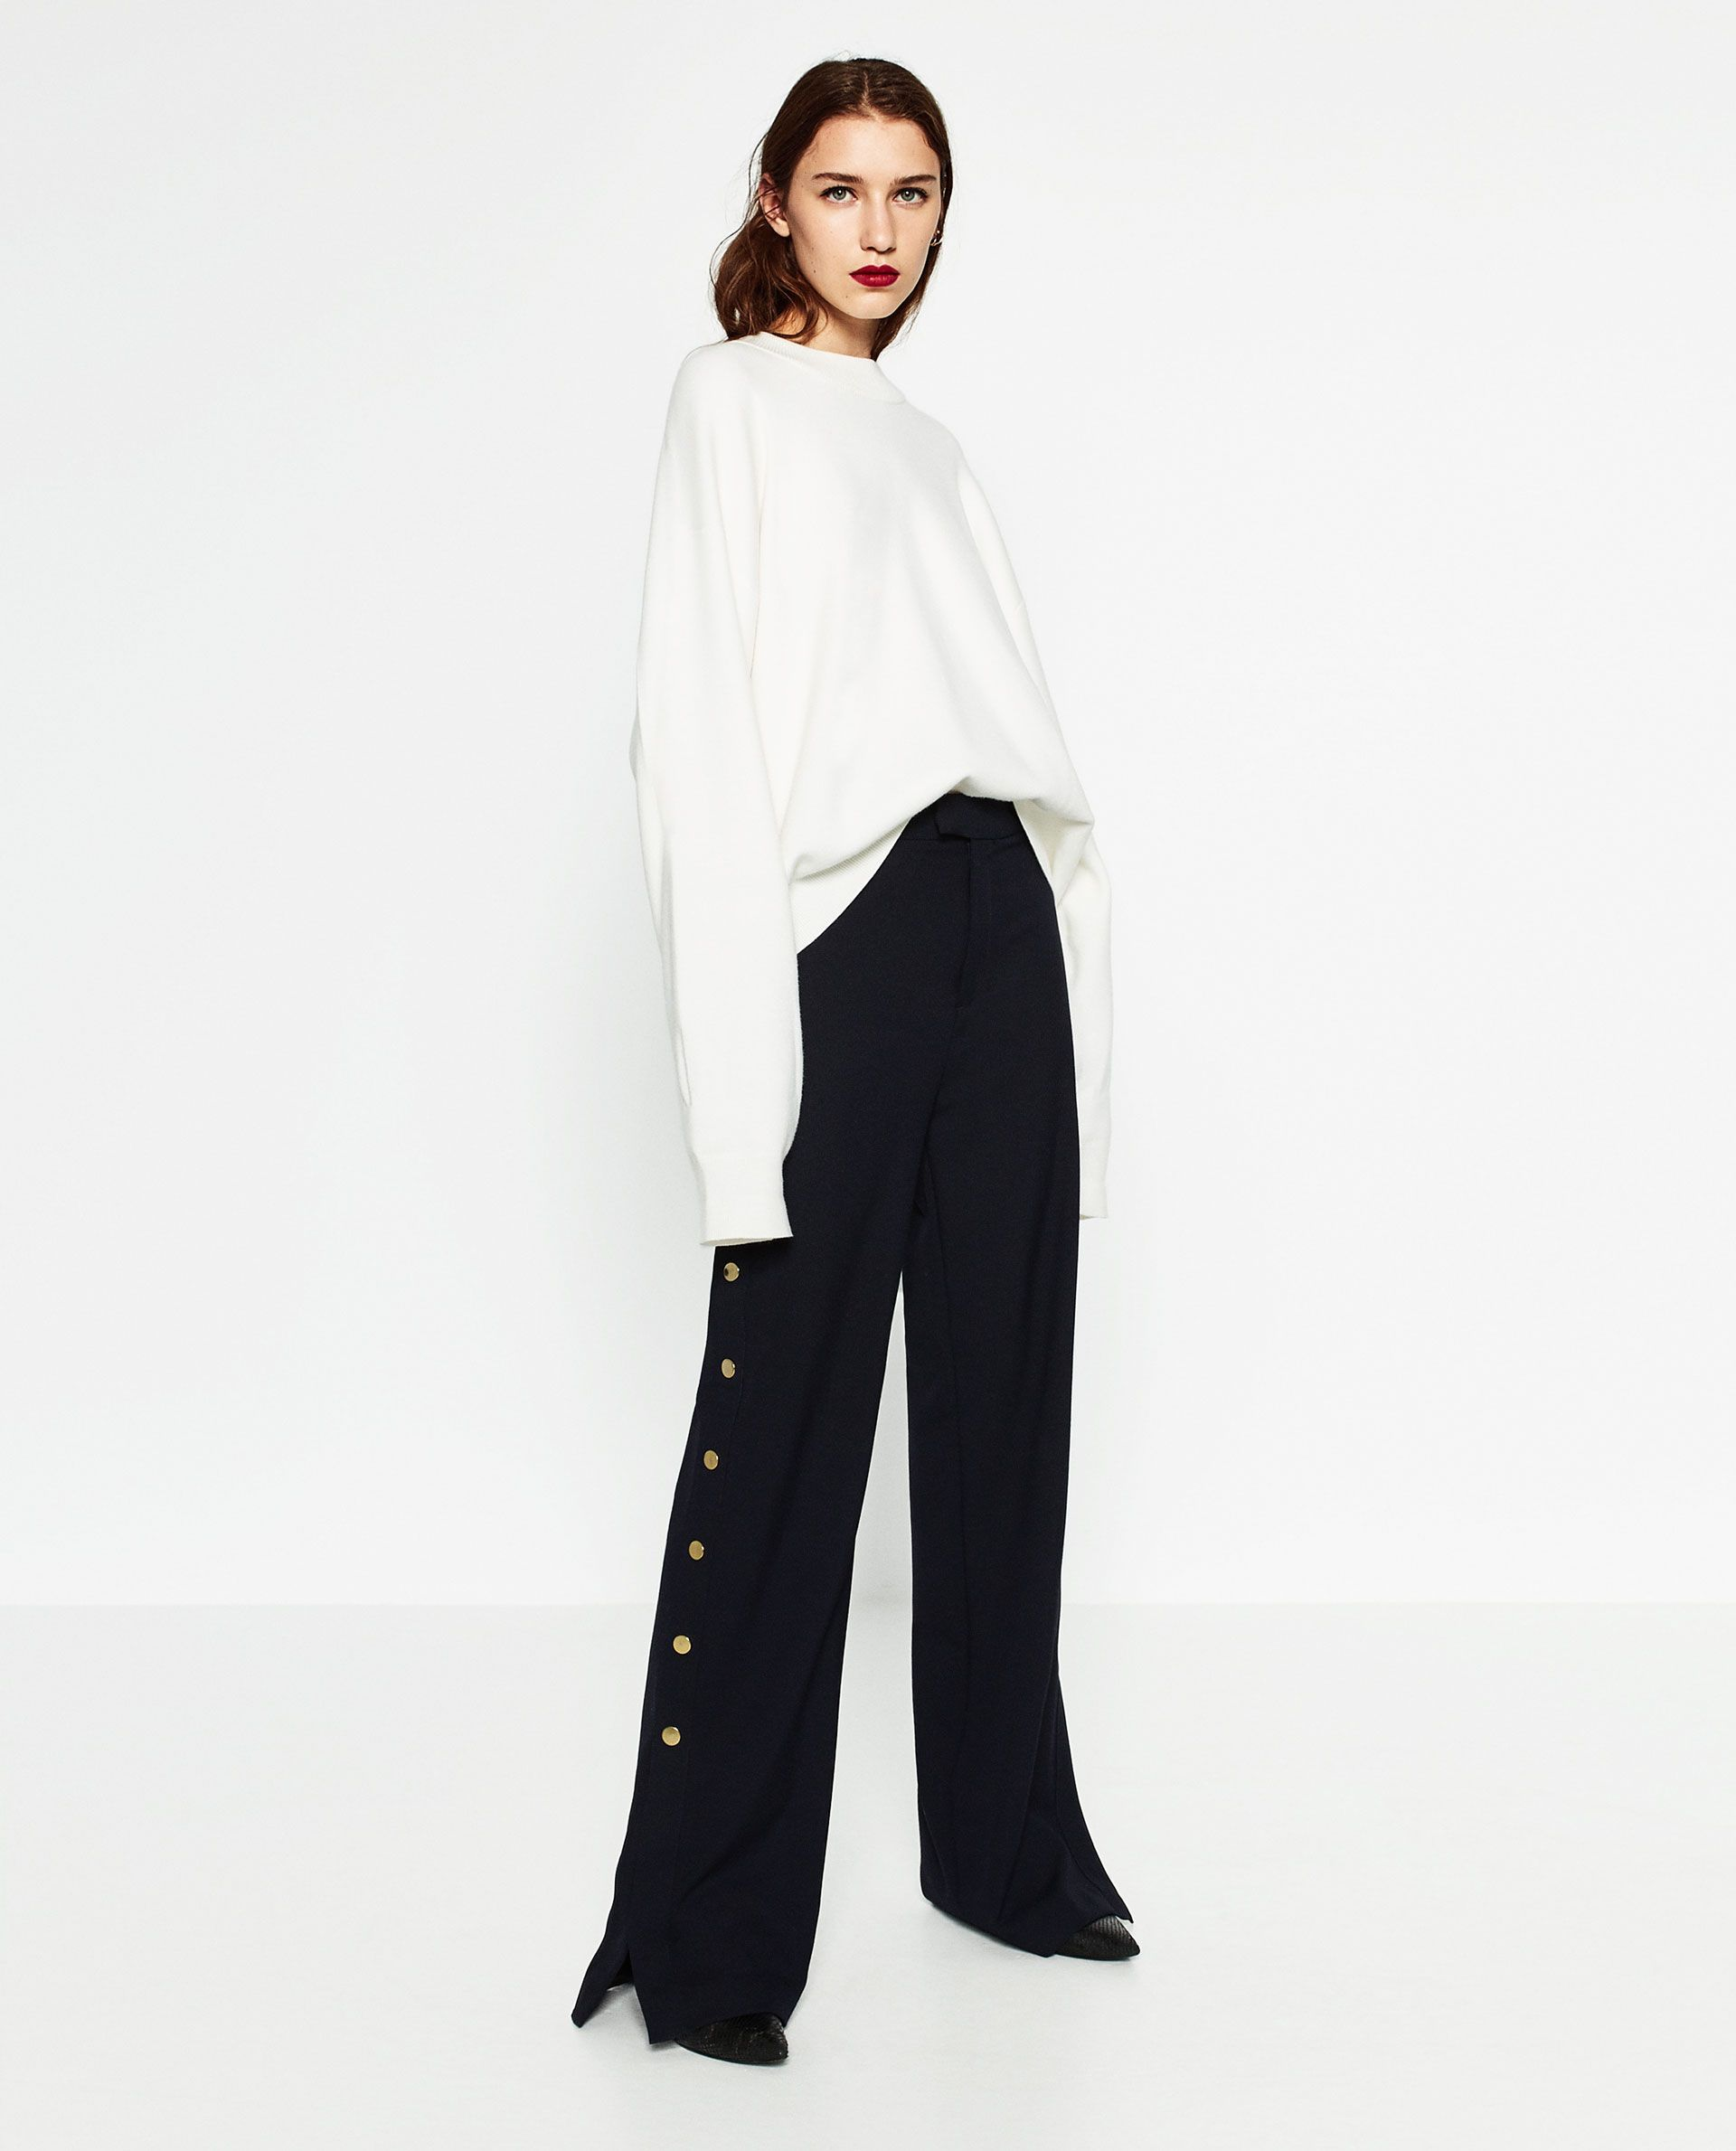 fd51f7c616e Zara s New Arrivals Will Get You Excited For Fall  refinery29 http   www